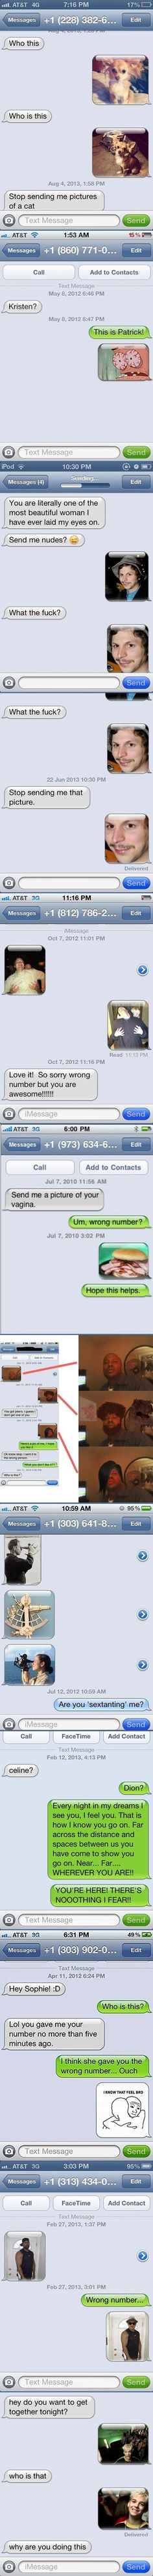 Perfect Ways To Respond To A Wrong Number Text …,  Click the link to view today's funniest pictures!